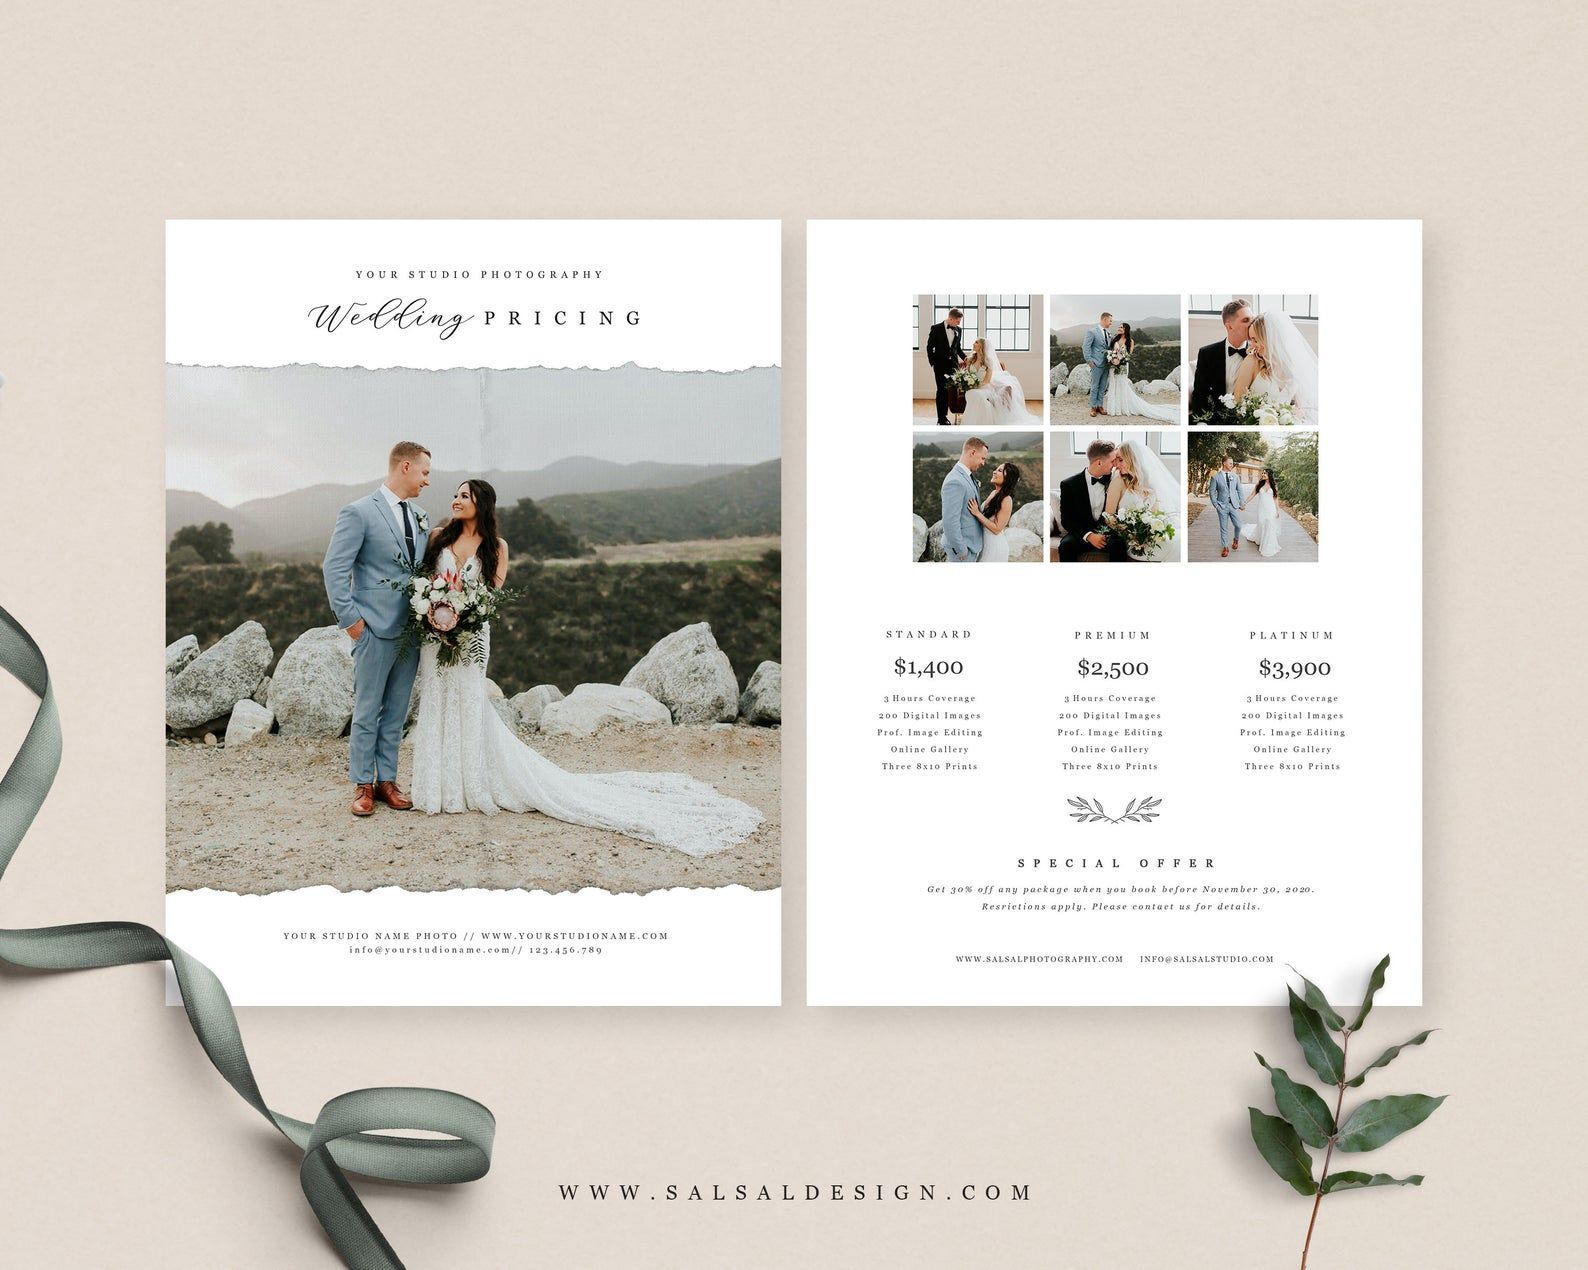 Wedding Photography Pricing Template Price Guide List For Etsy Wedding Pricing Guide Wedding Photography Pricing Pricing Guide Photography Wedding photography pricing template free